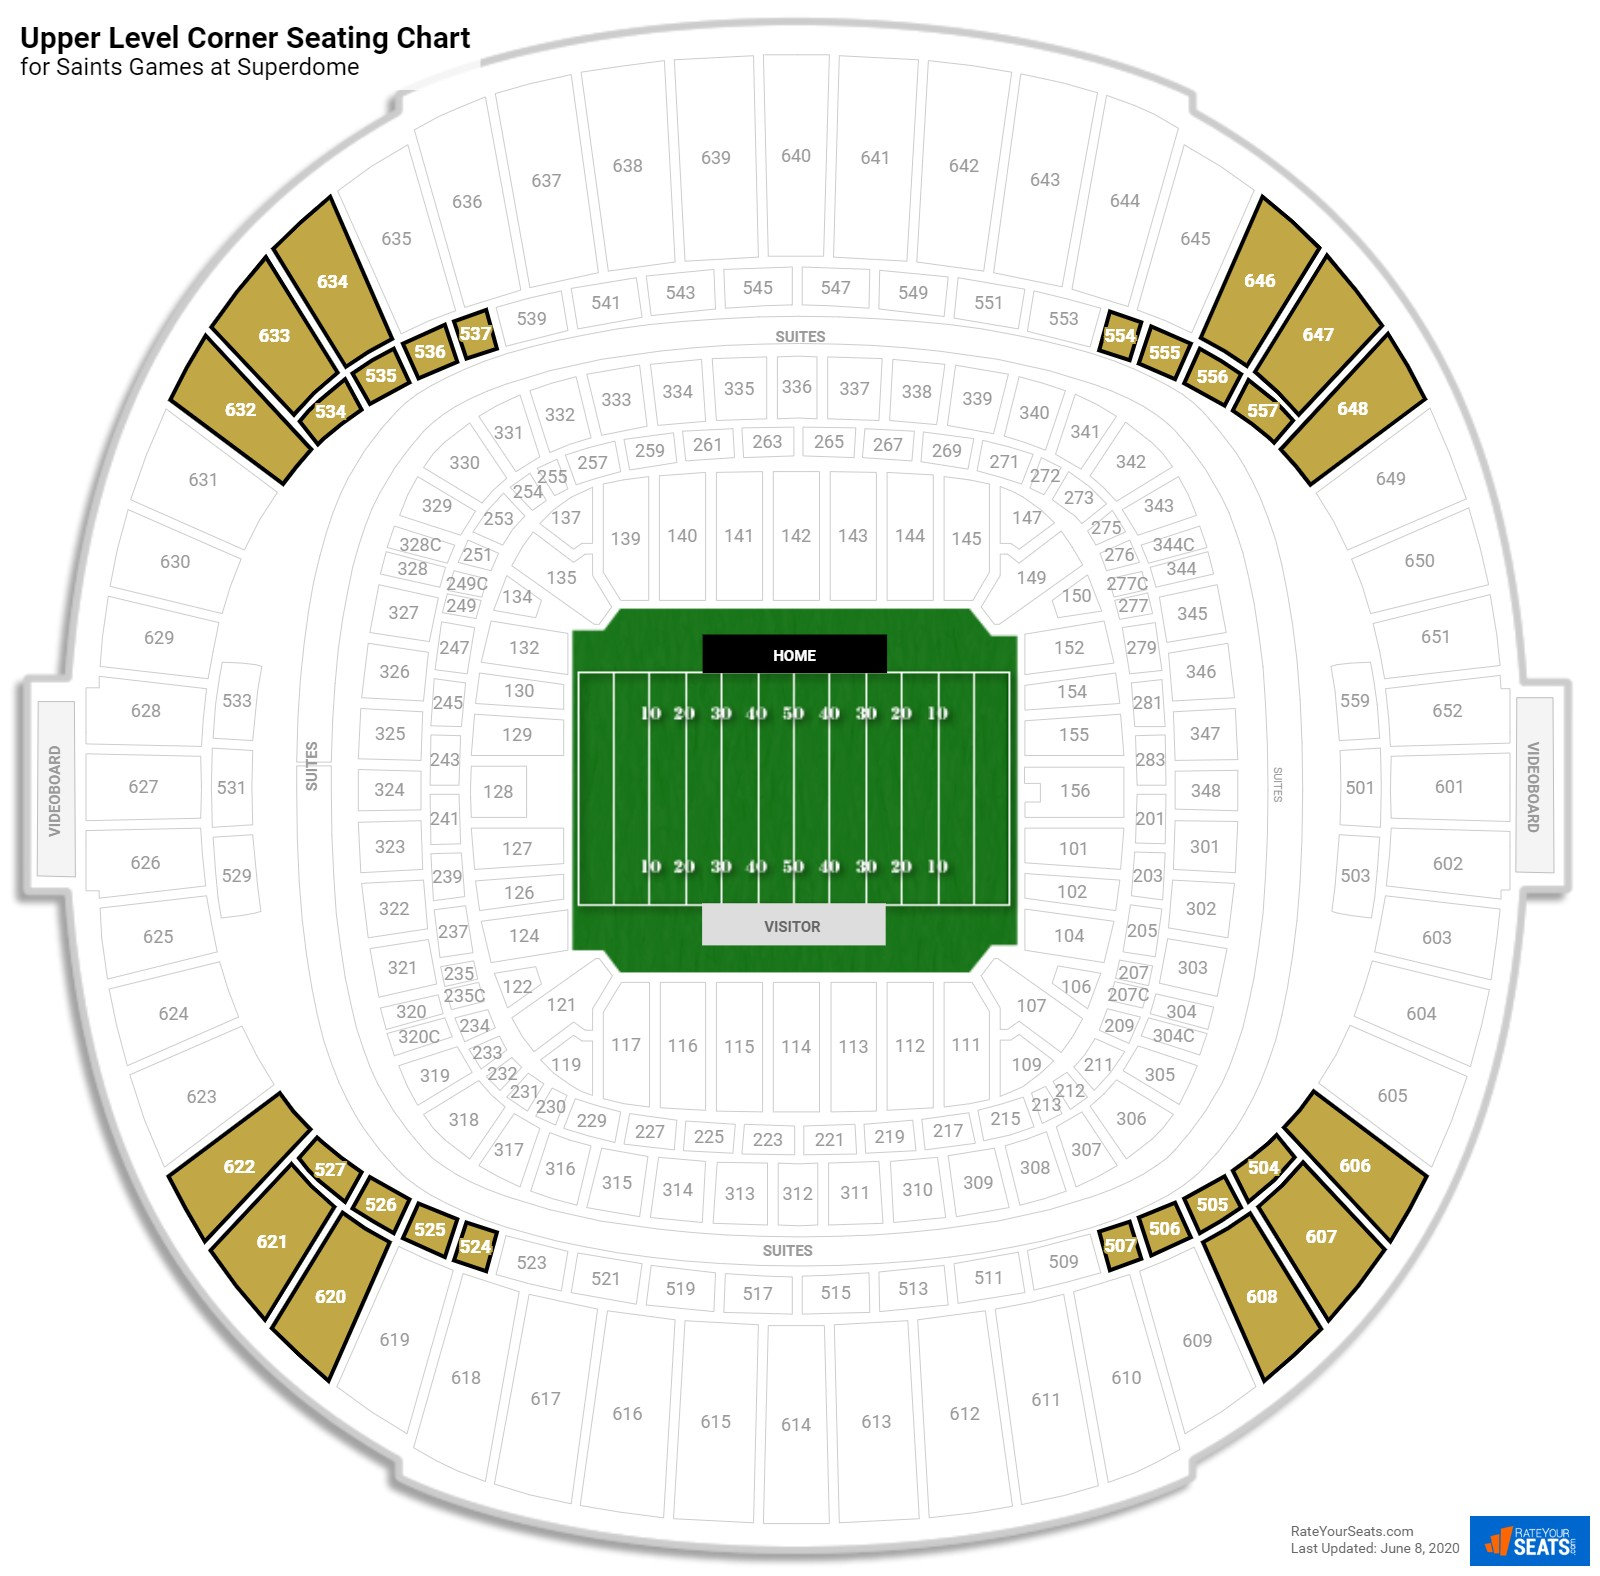 Superdome Upper Level Corner seating chart